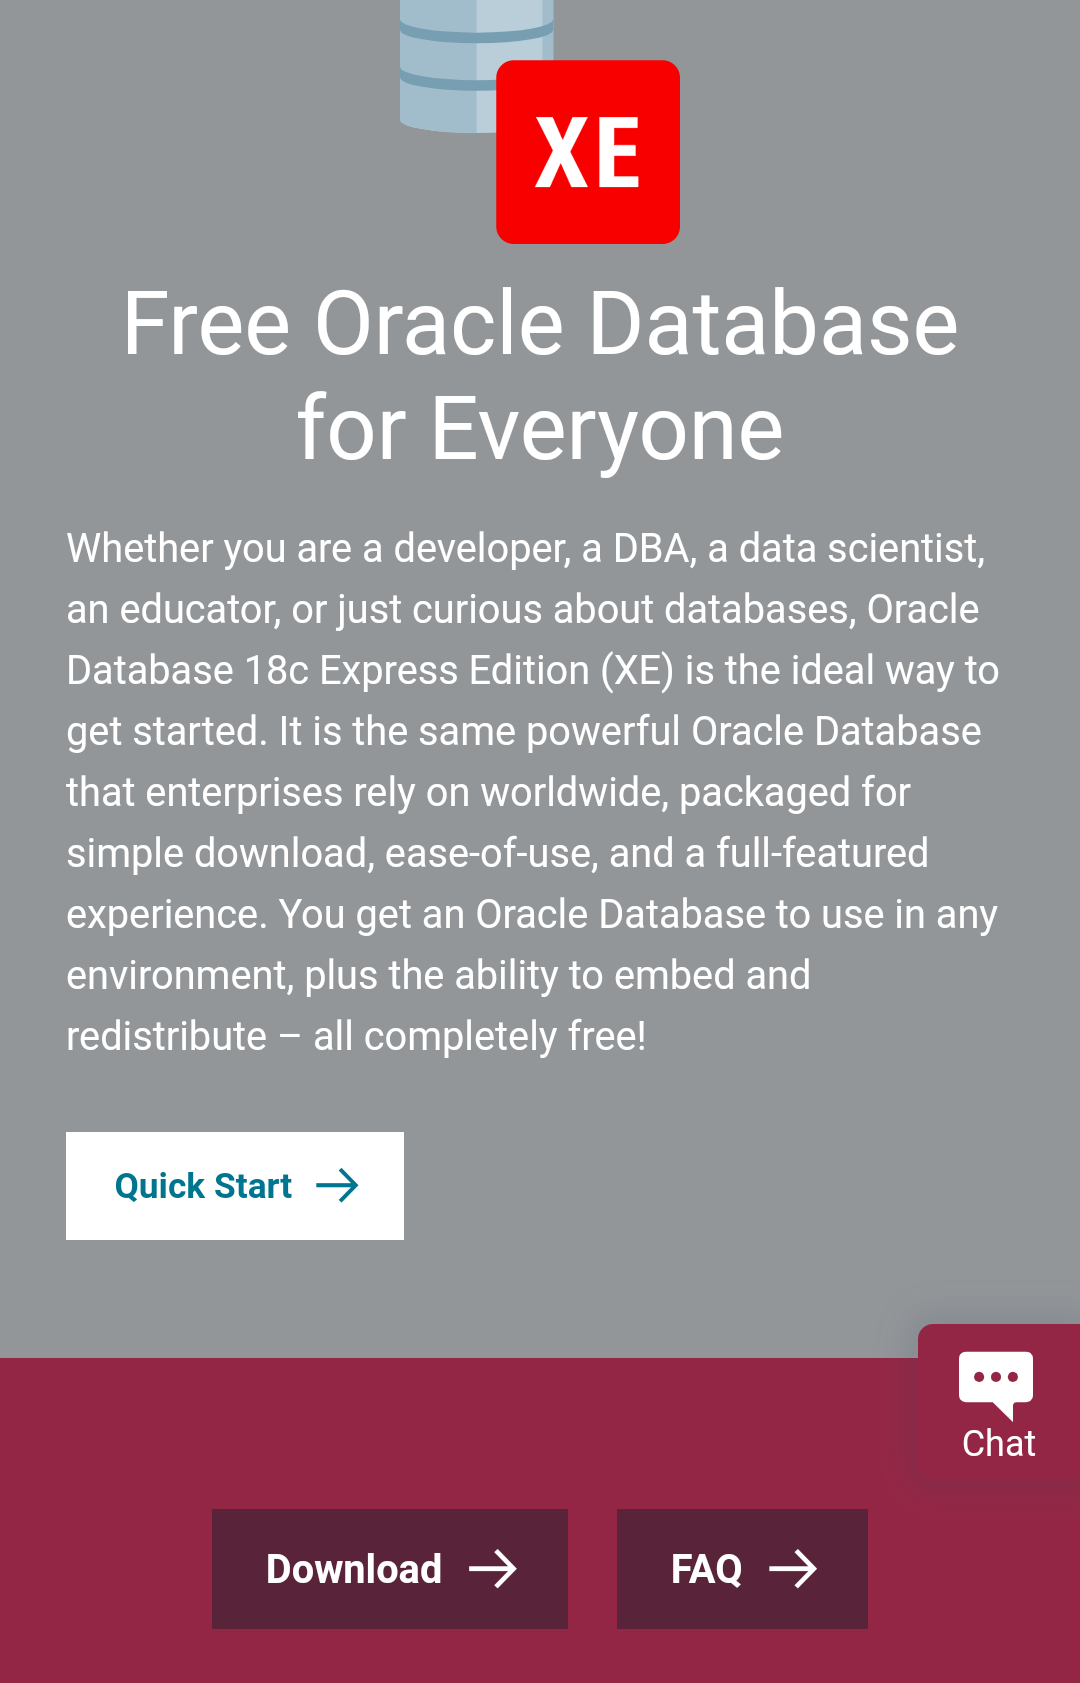 Where can I get a free oracle database? - Quora